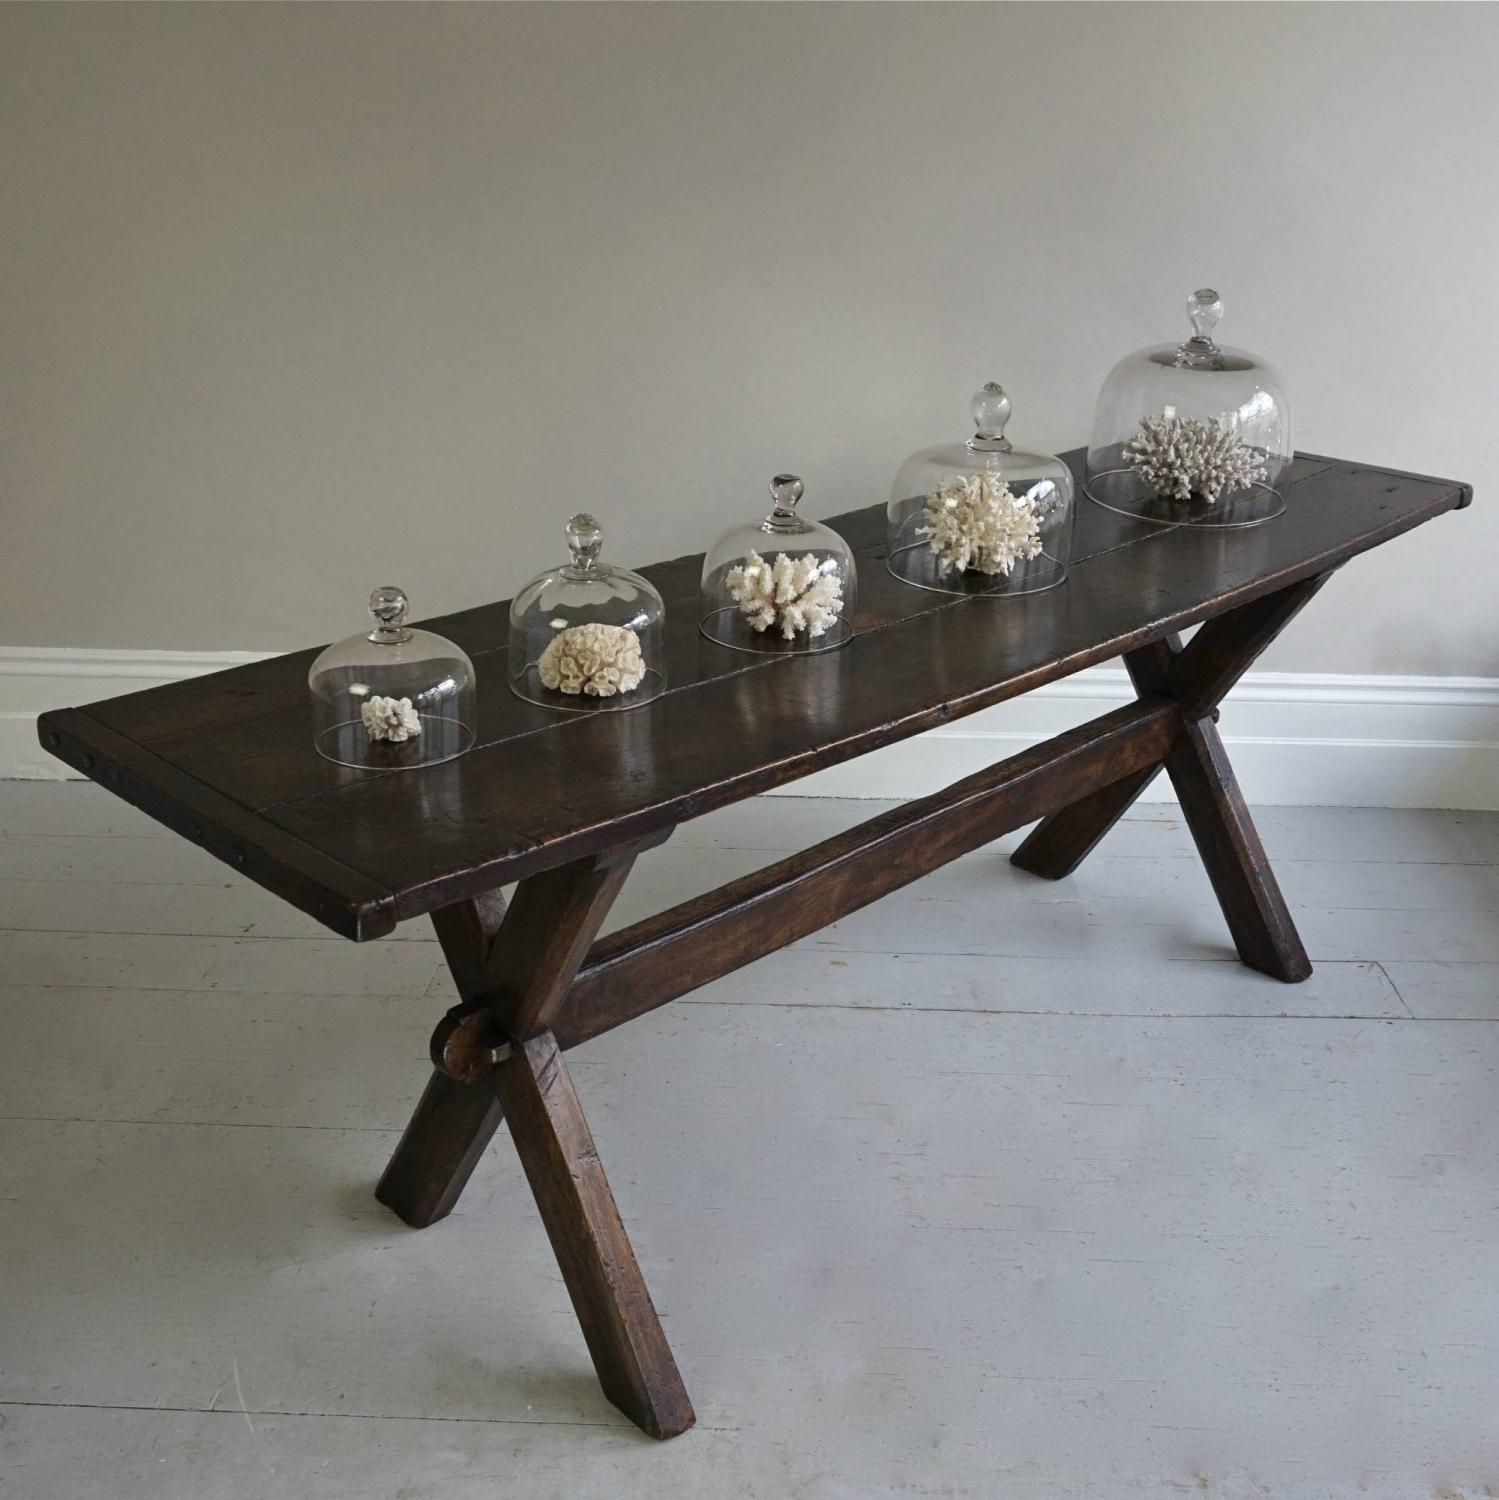 EARLY 19TH CENTURY ENGLISH OAK TRESTLE TABLE